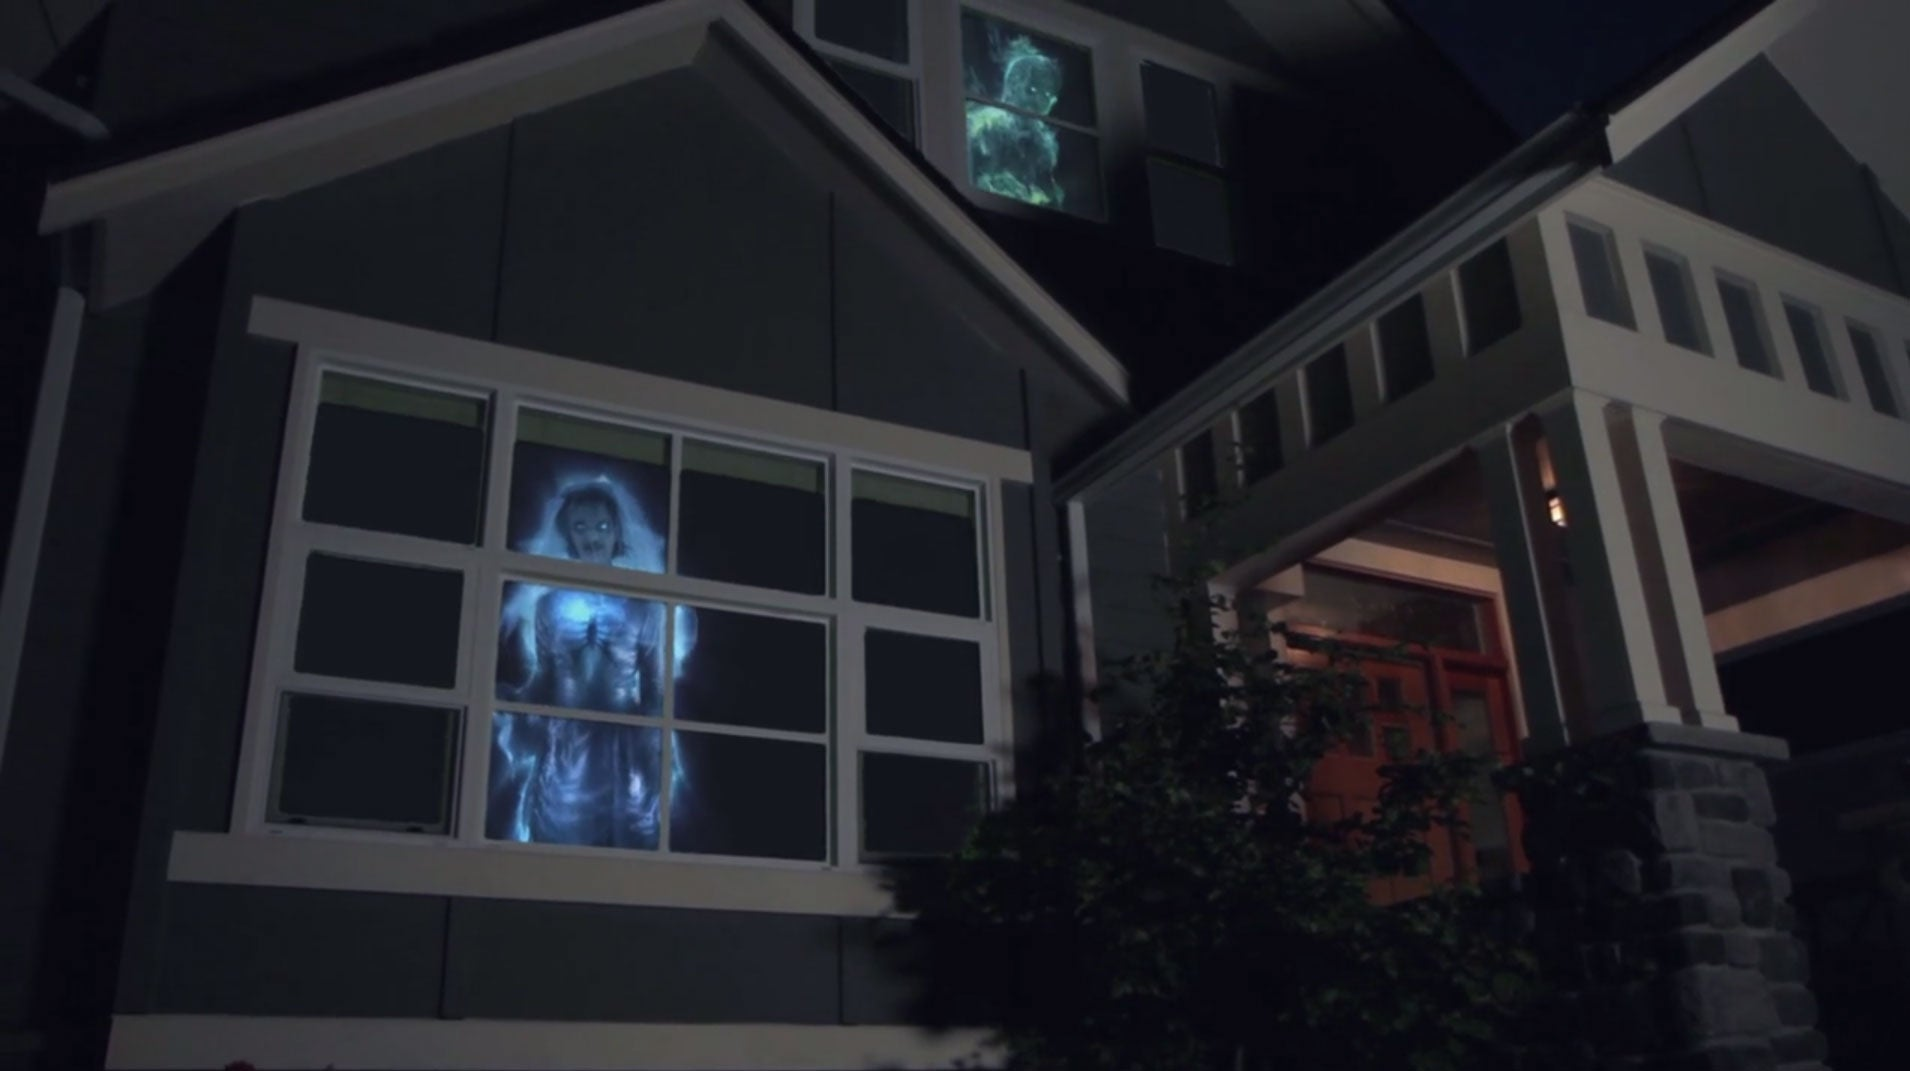 Inside house windows at night - This Allows You To Keep Your Projector Safely Inside While Everyone On The Outside Can Marvel At The Mysterious Goings On Inside Your Home Or Business